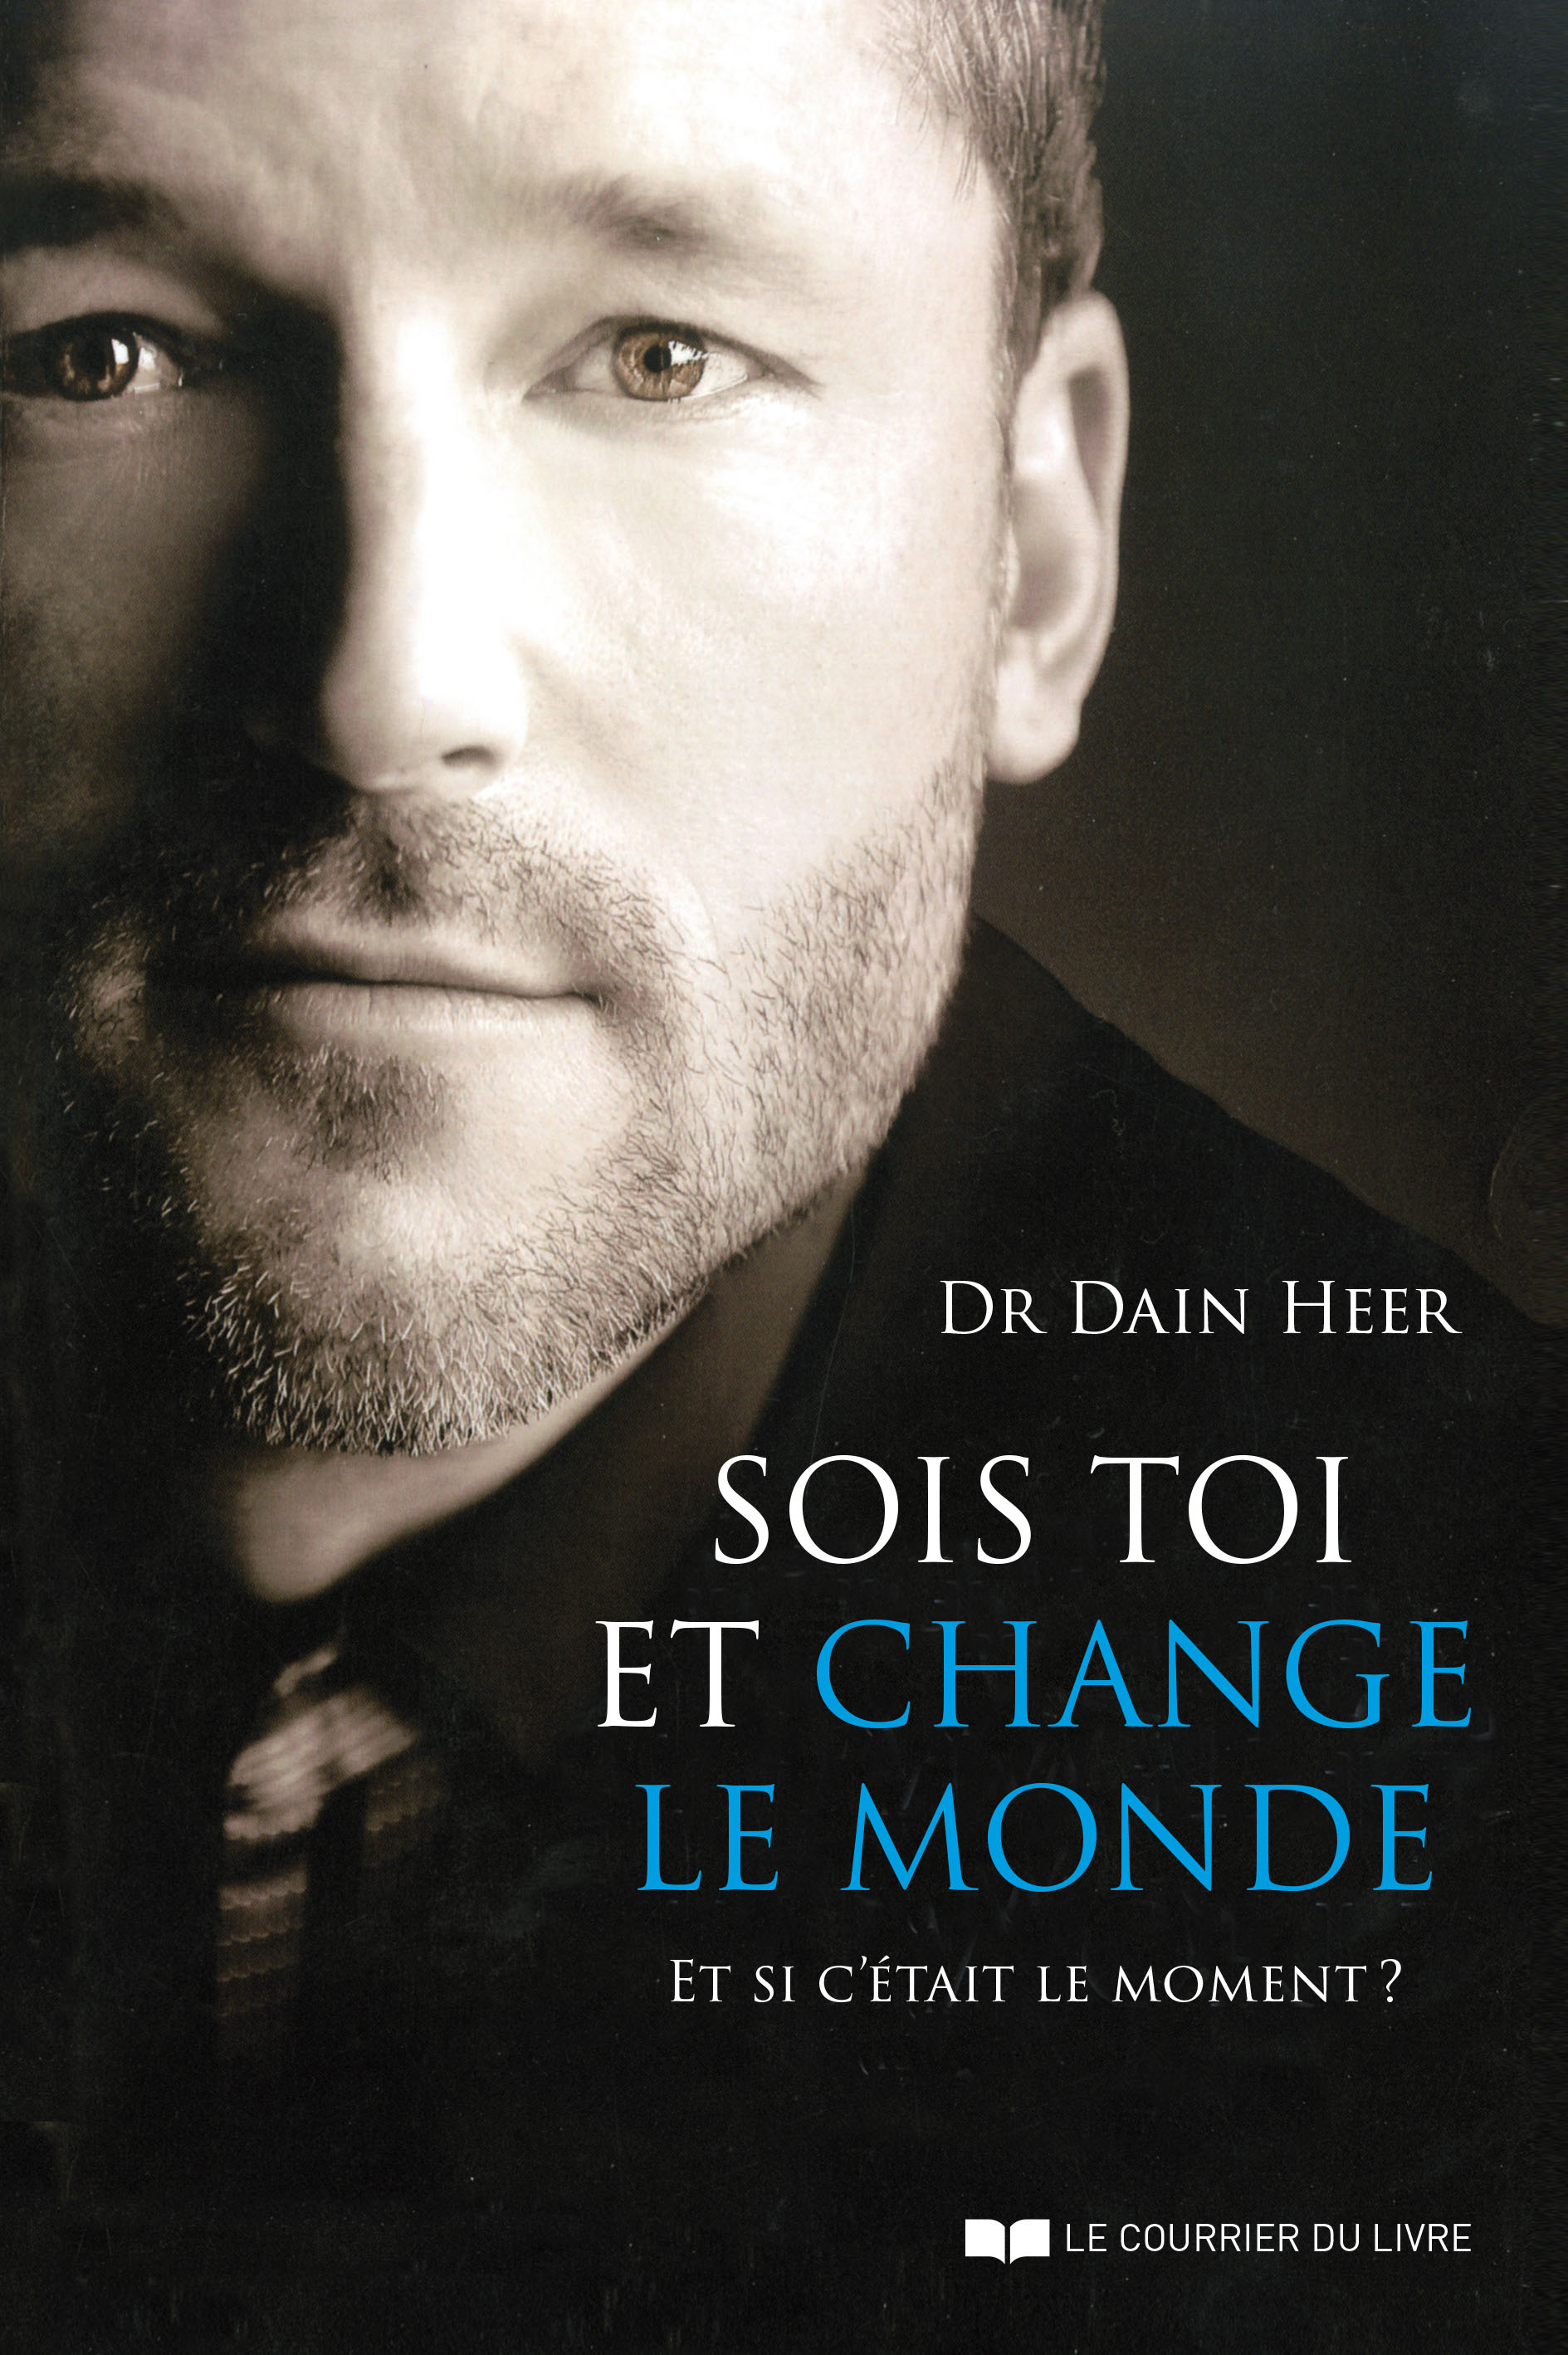 Sois toi et change le monde (Being You, Changing the World - French Version)